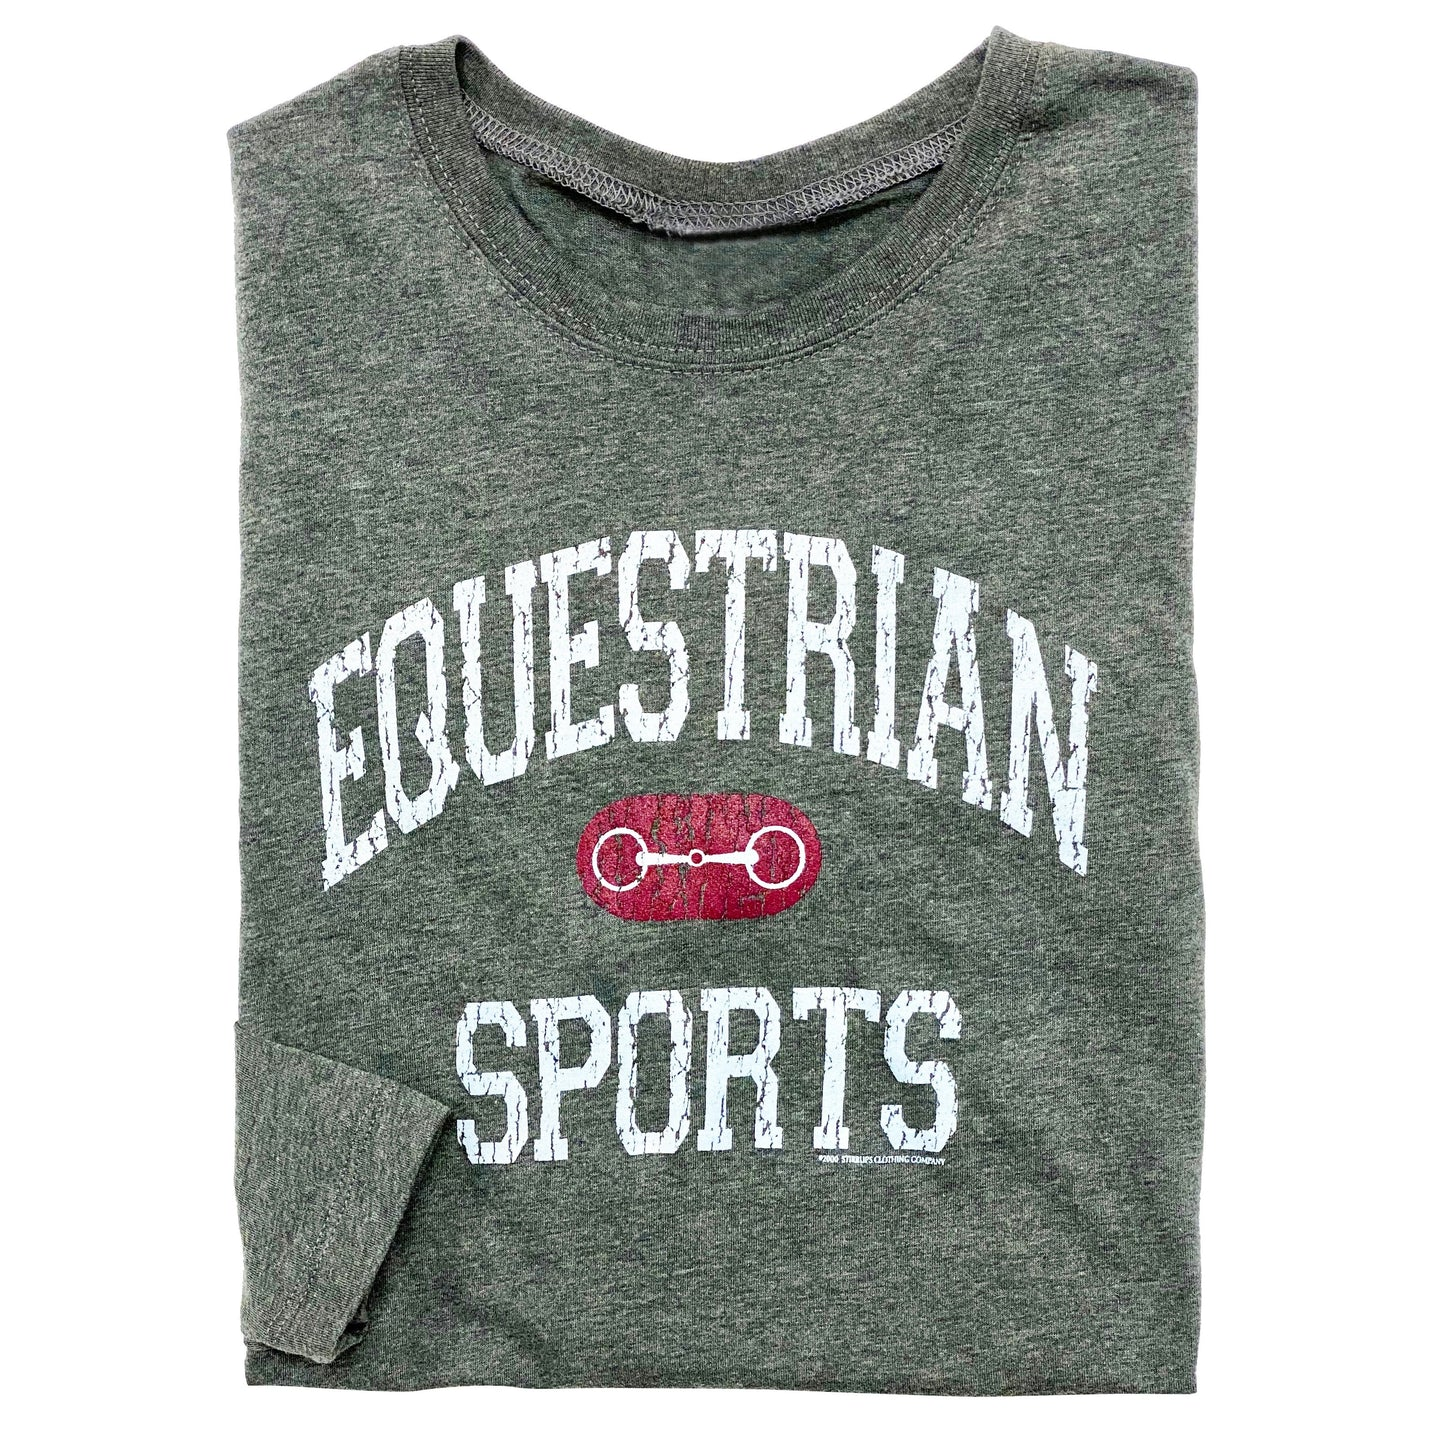 20528 - Equestrian Sports w/ Bit Long Sleeve Fitted Tee